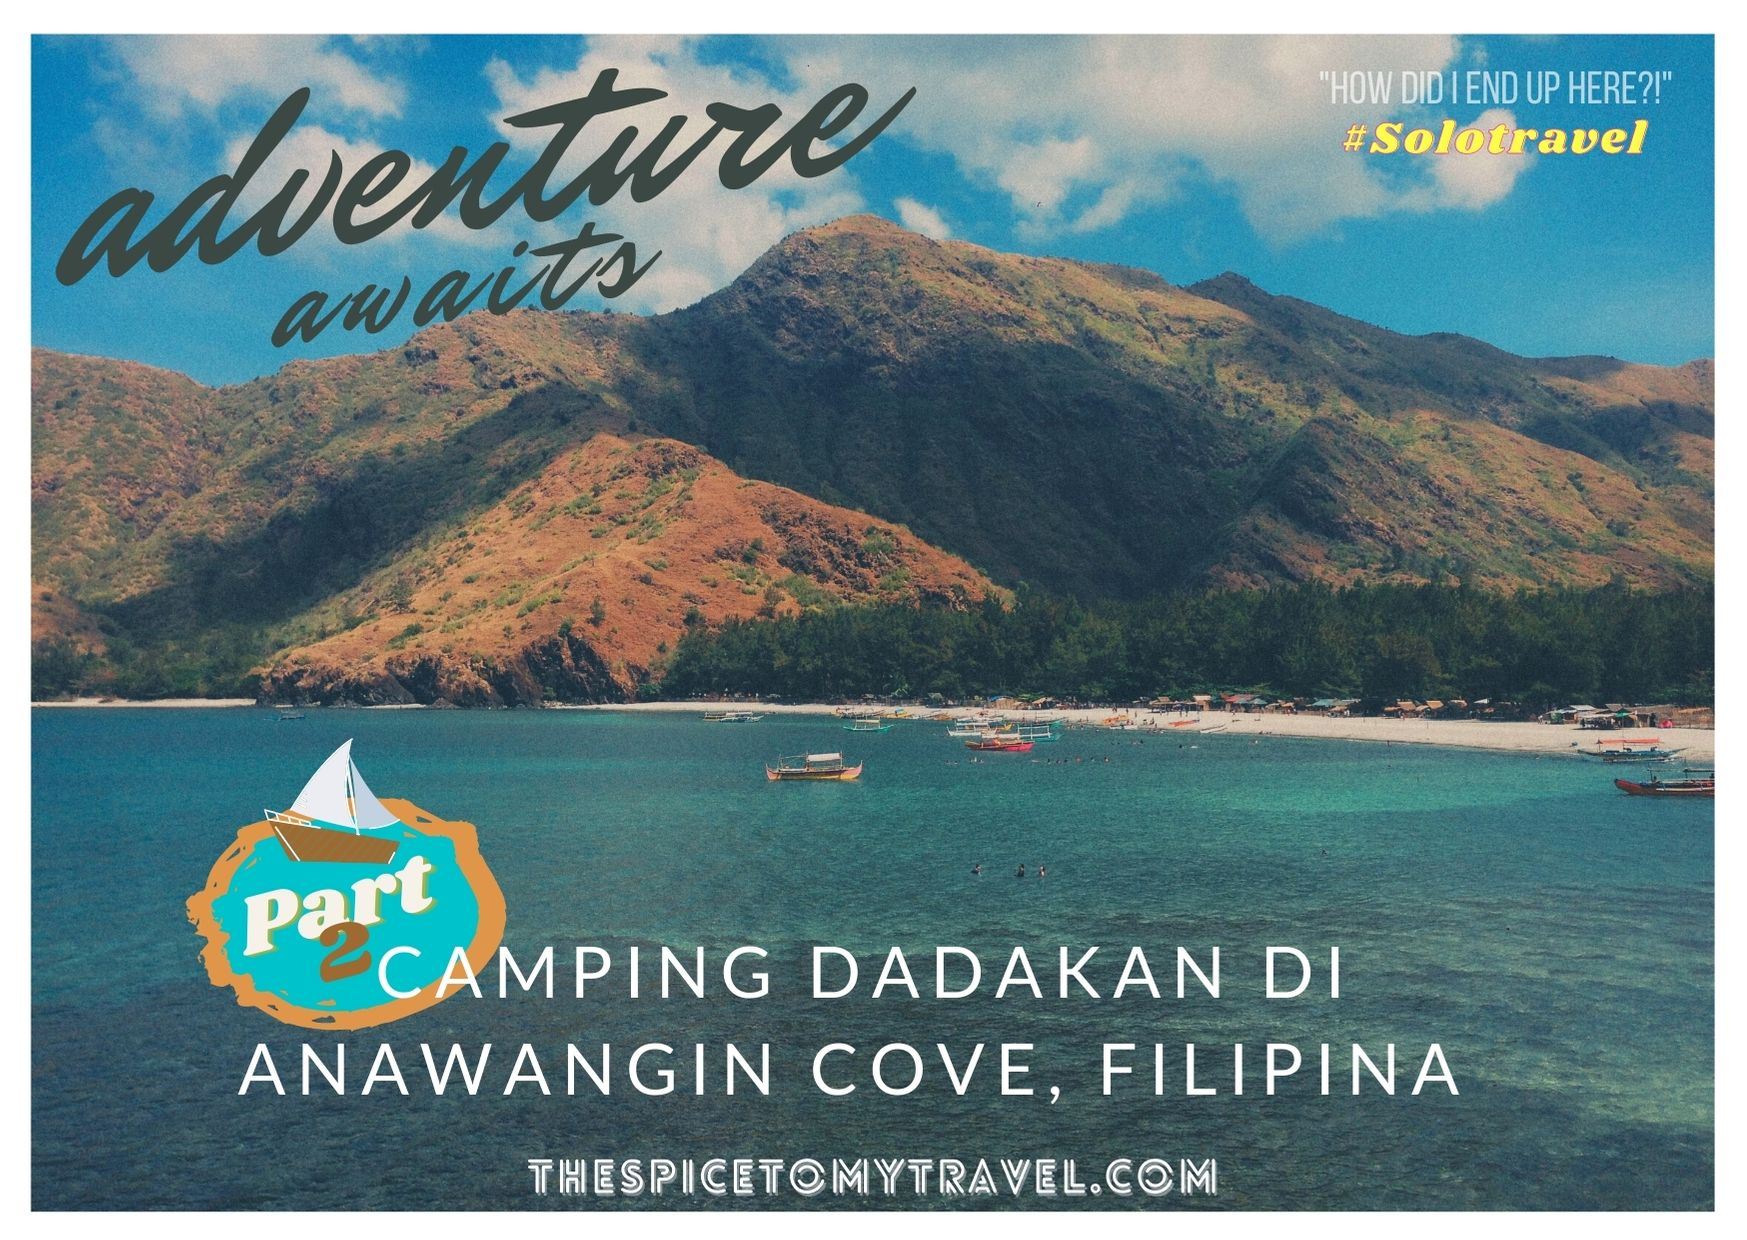 Camping Dadakan Di Anawangin Cove, Filipina (Part 2)